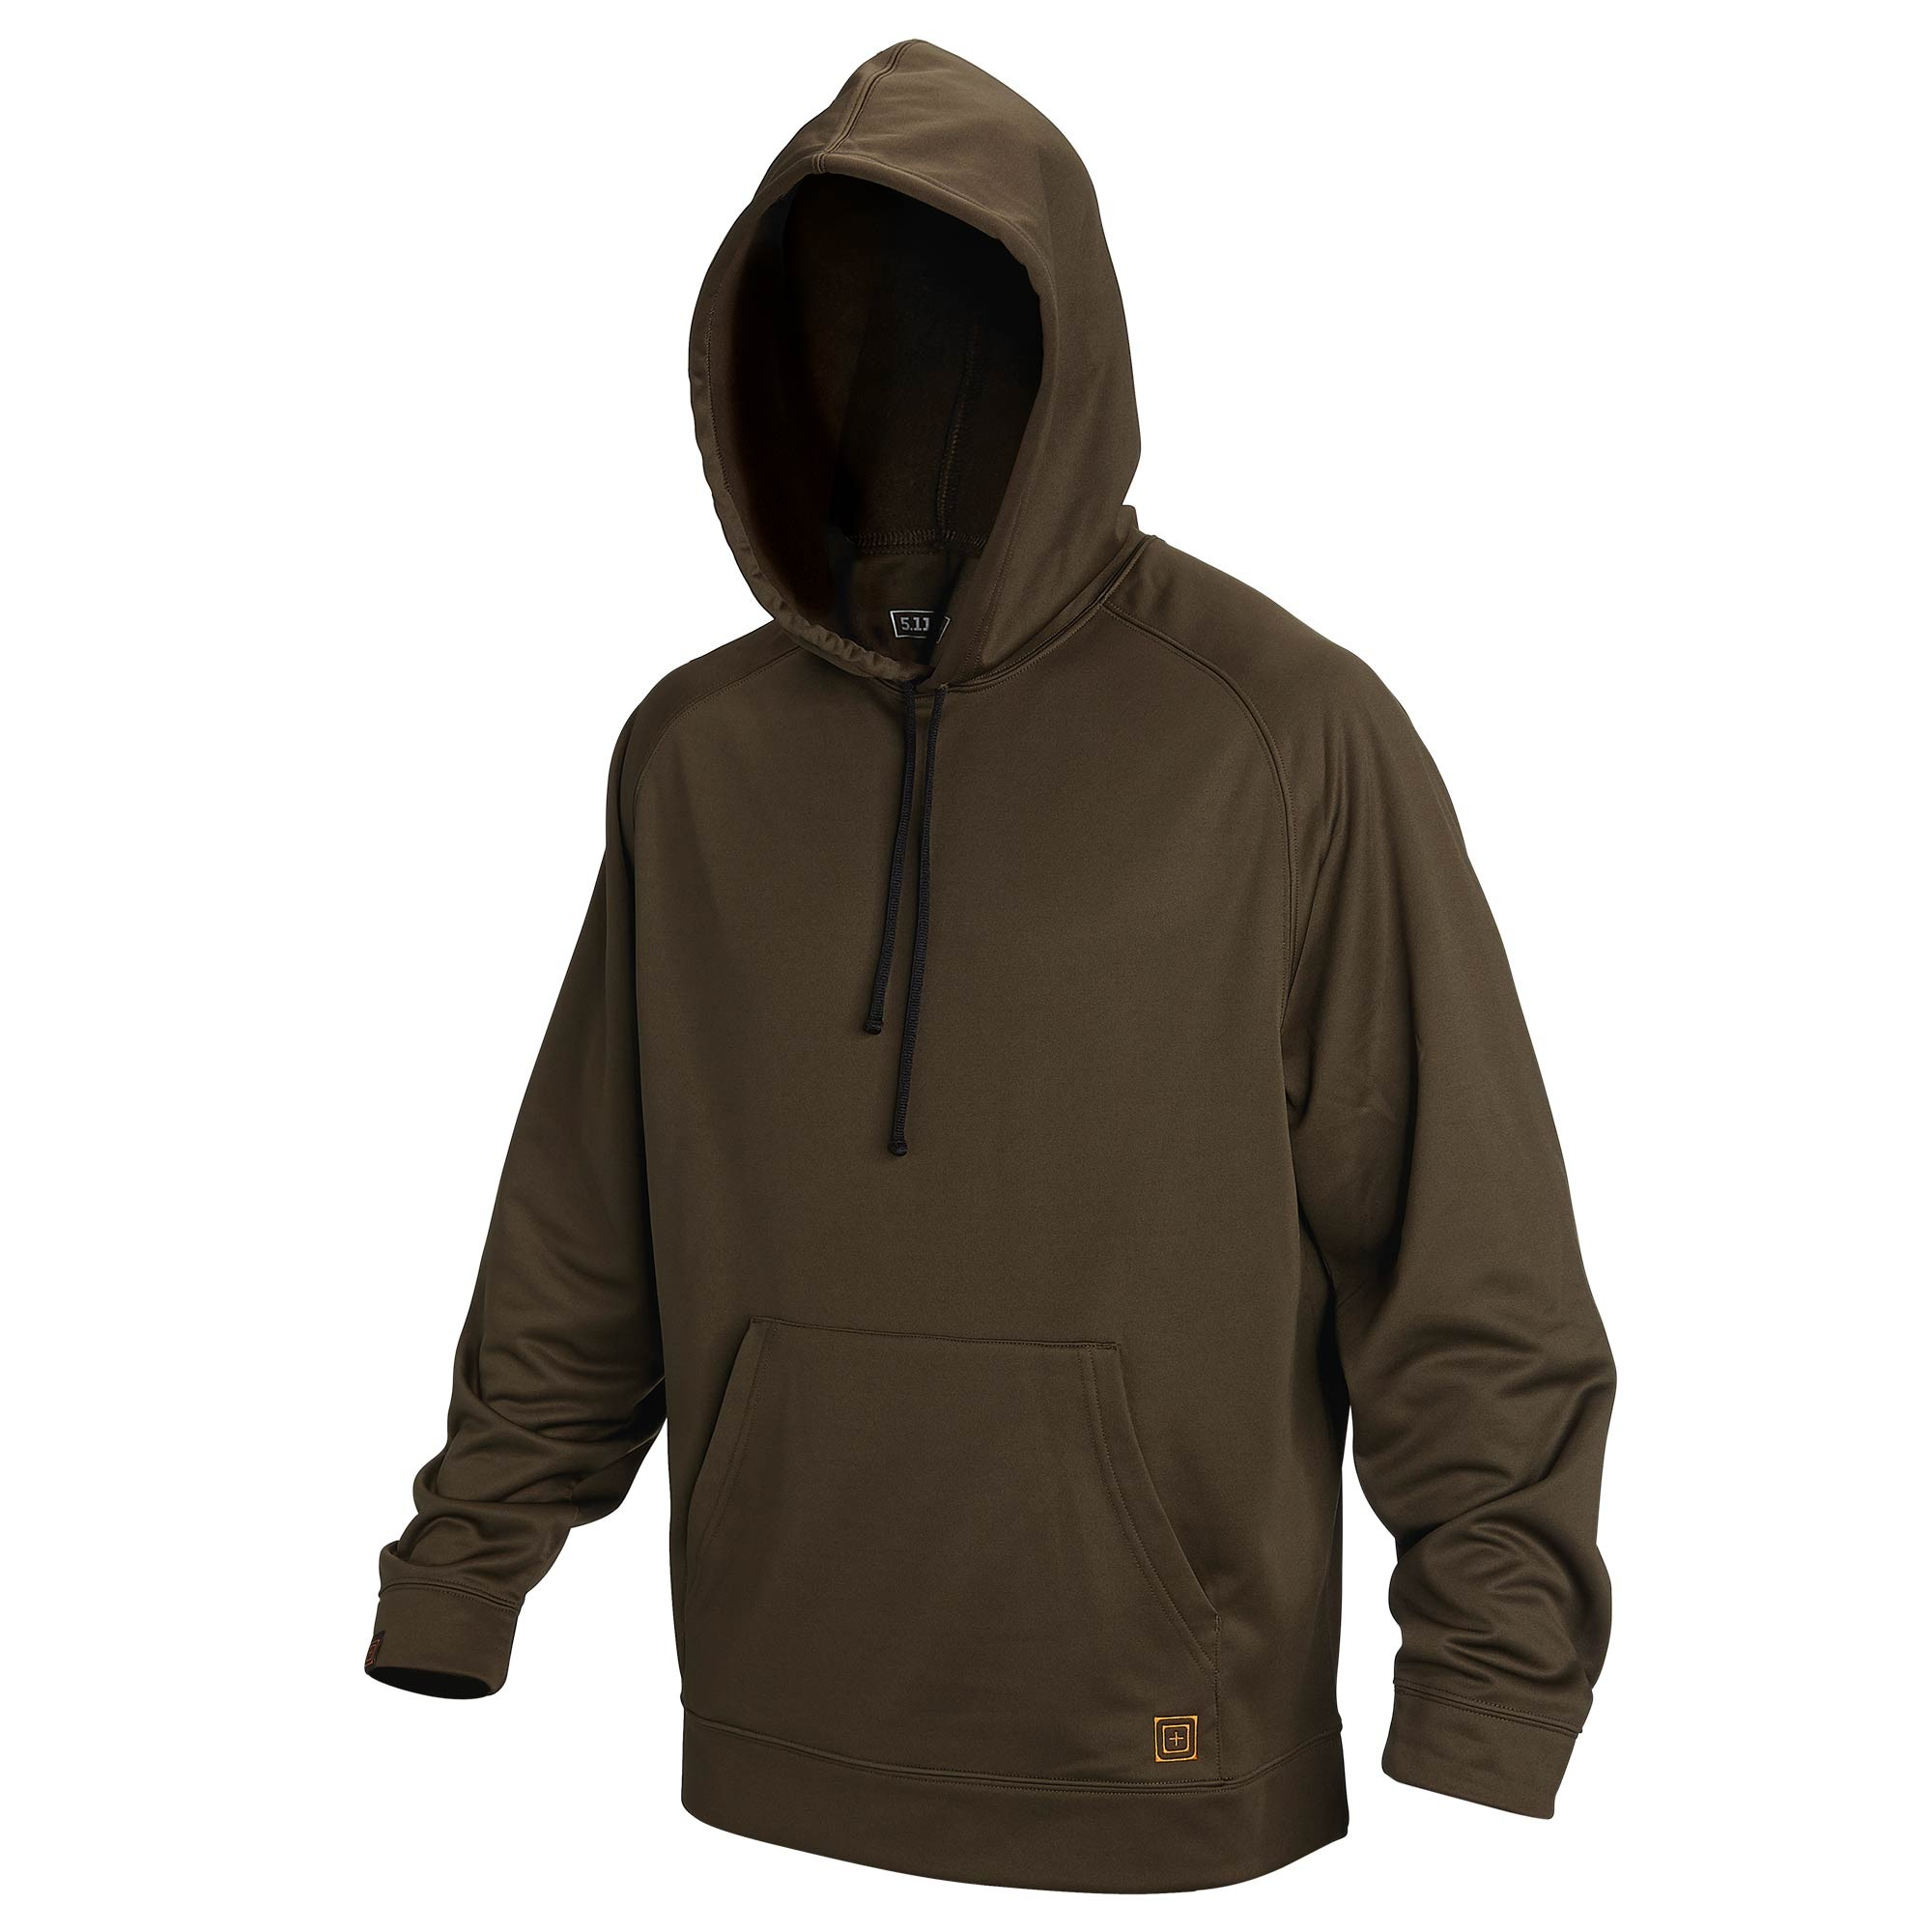 5.11 Tactical Covert Hooded Pull Over Hoodie Sweater Front Pocket ...